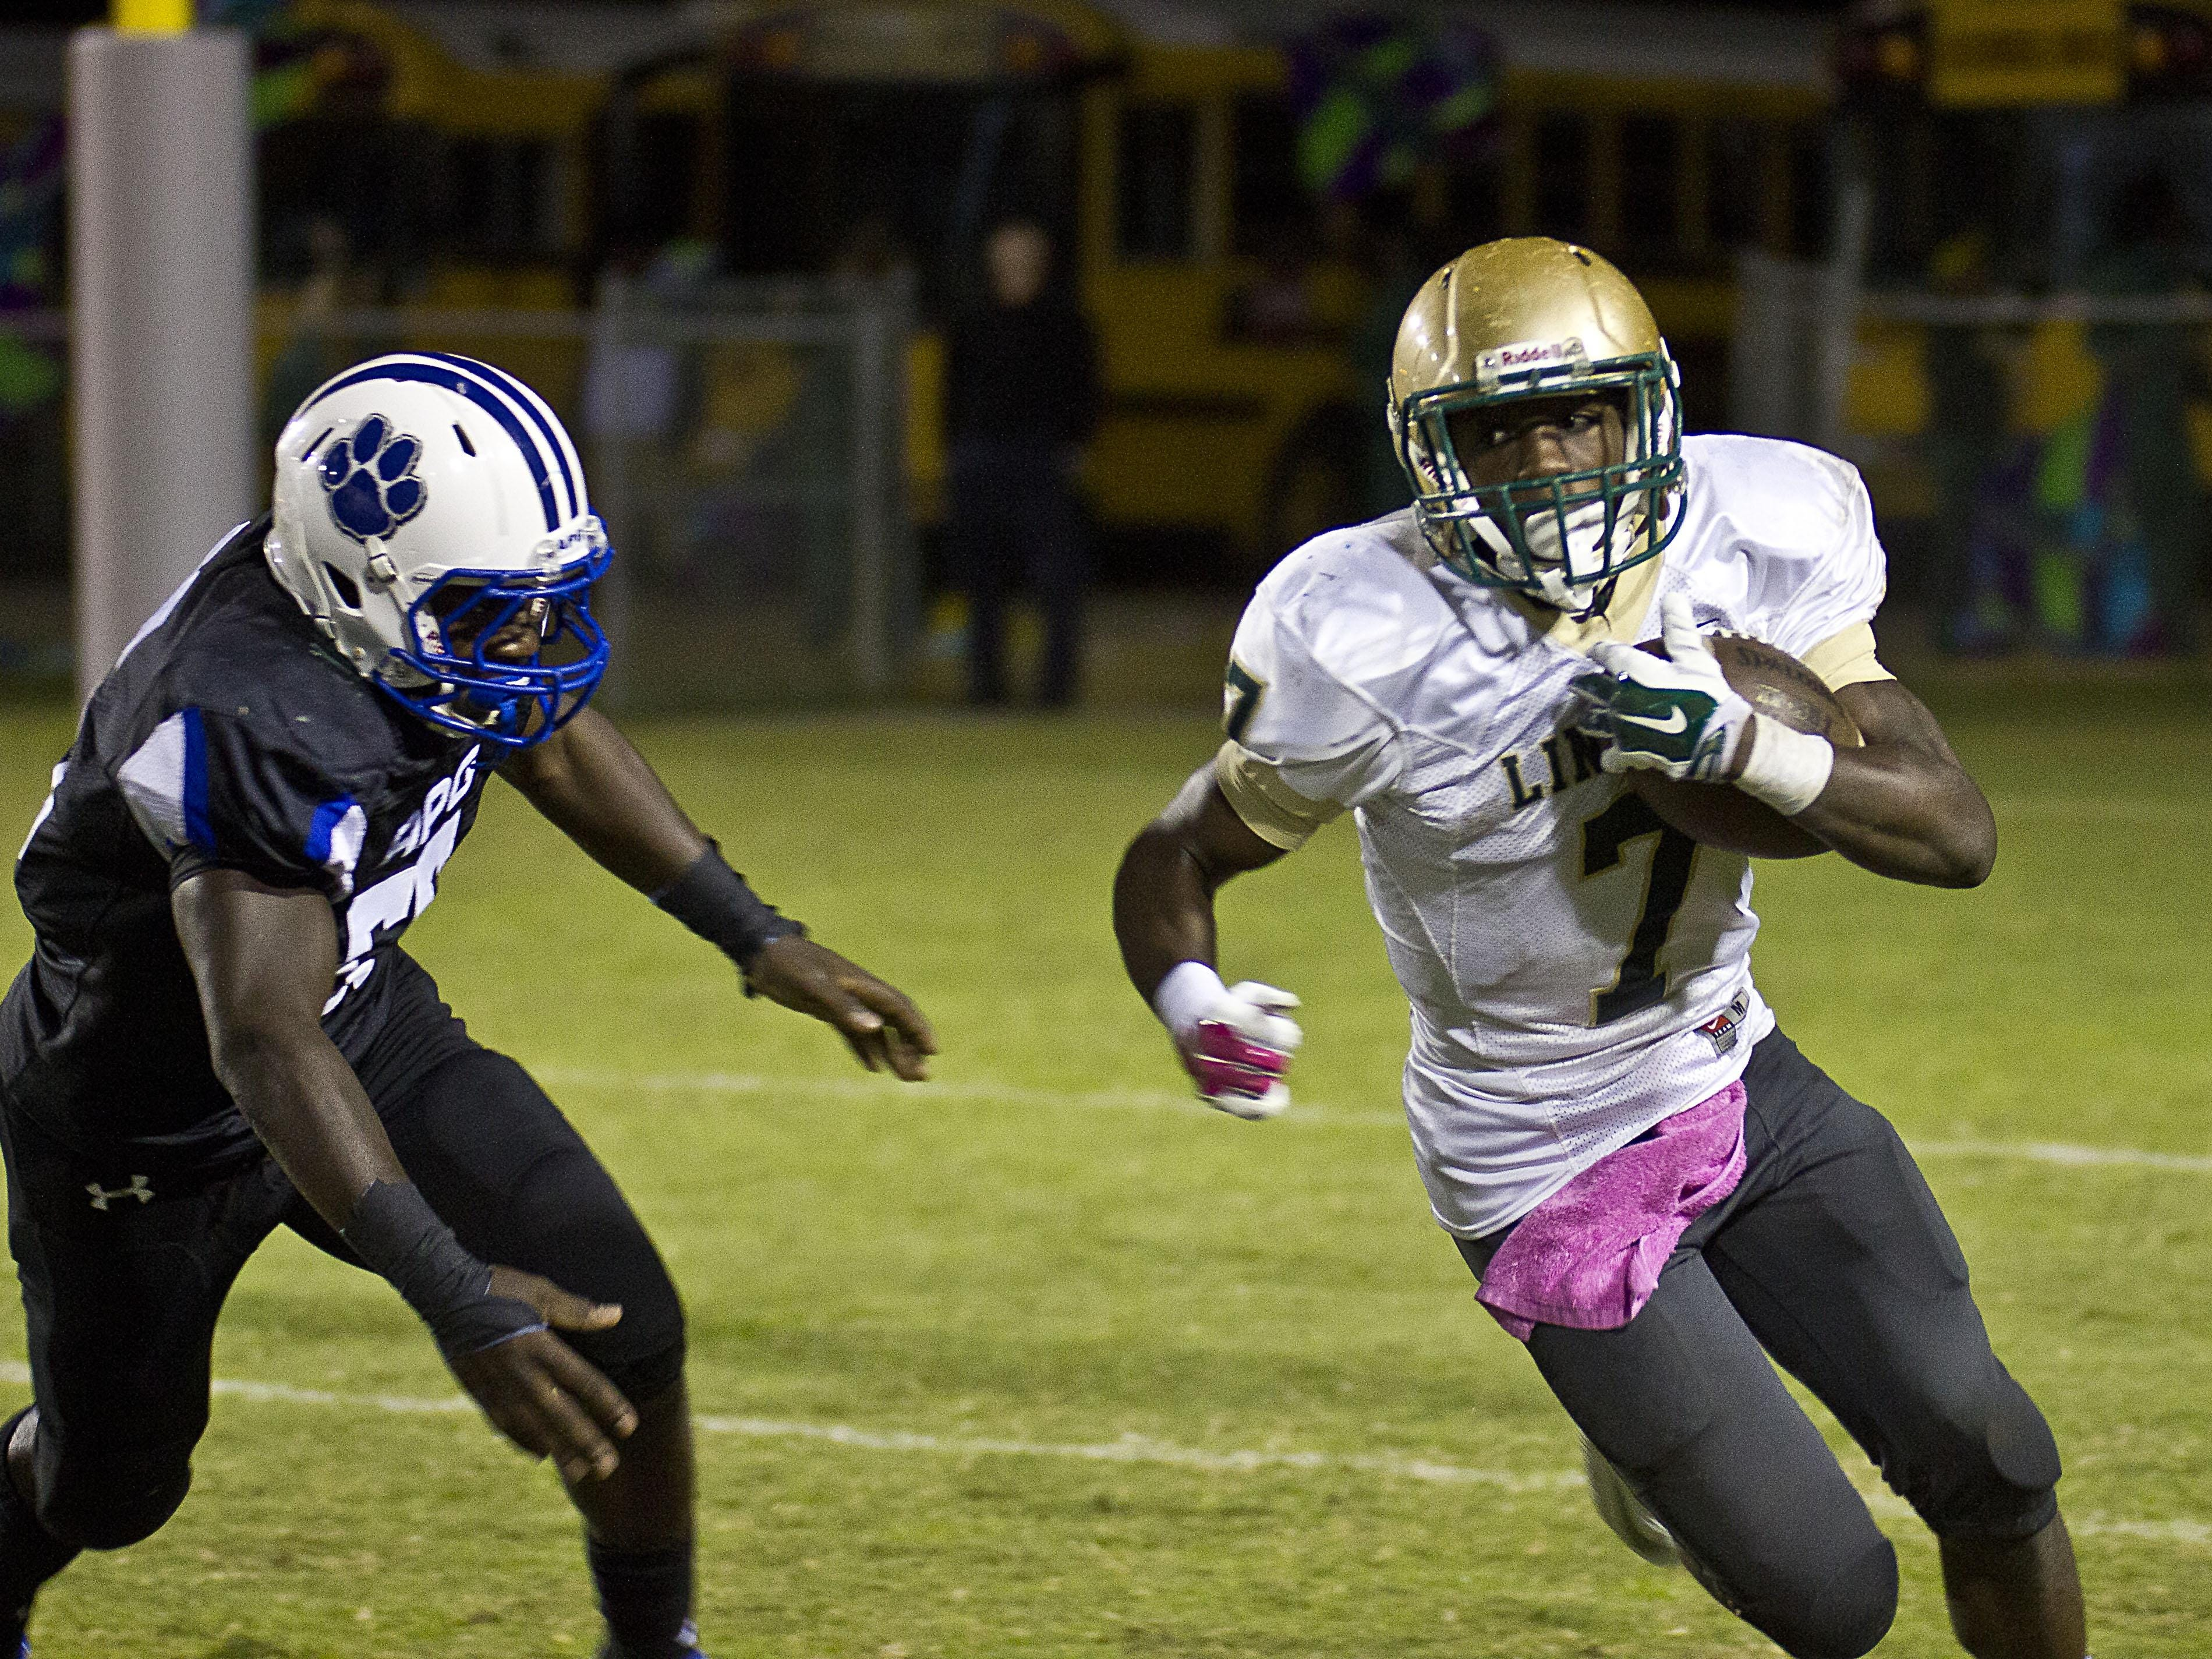 Lincoln running back Ricky Henrilus goes for a gain against Godby during last year's 22-17 loss to the Cougars.